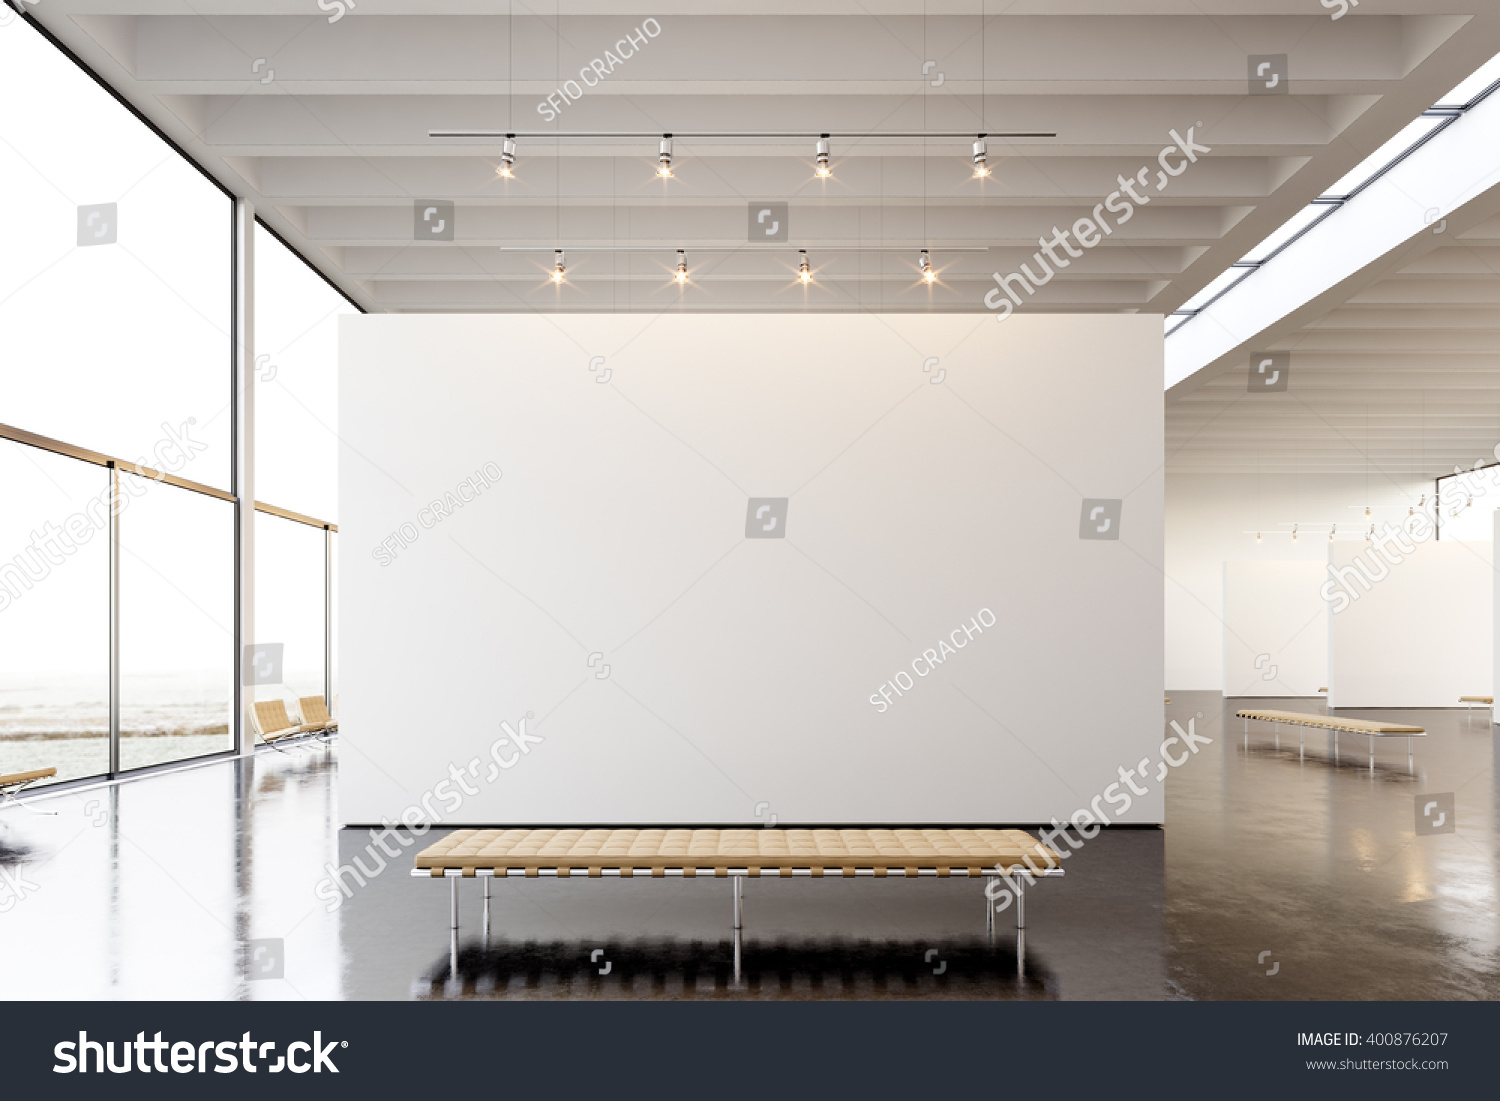 contemporary art furniture. Picture Exposition Modern Gallery,open Space.Blank White Empty Canvas Hanging Contemporary Art Museum Furniture